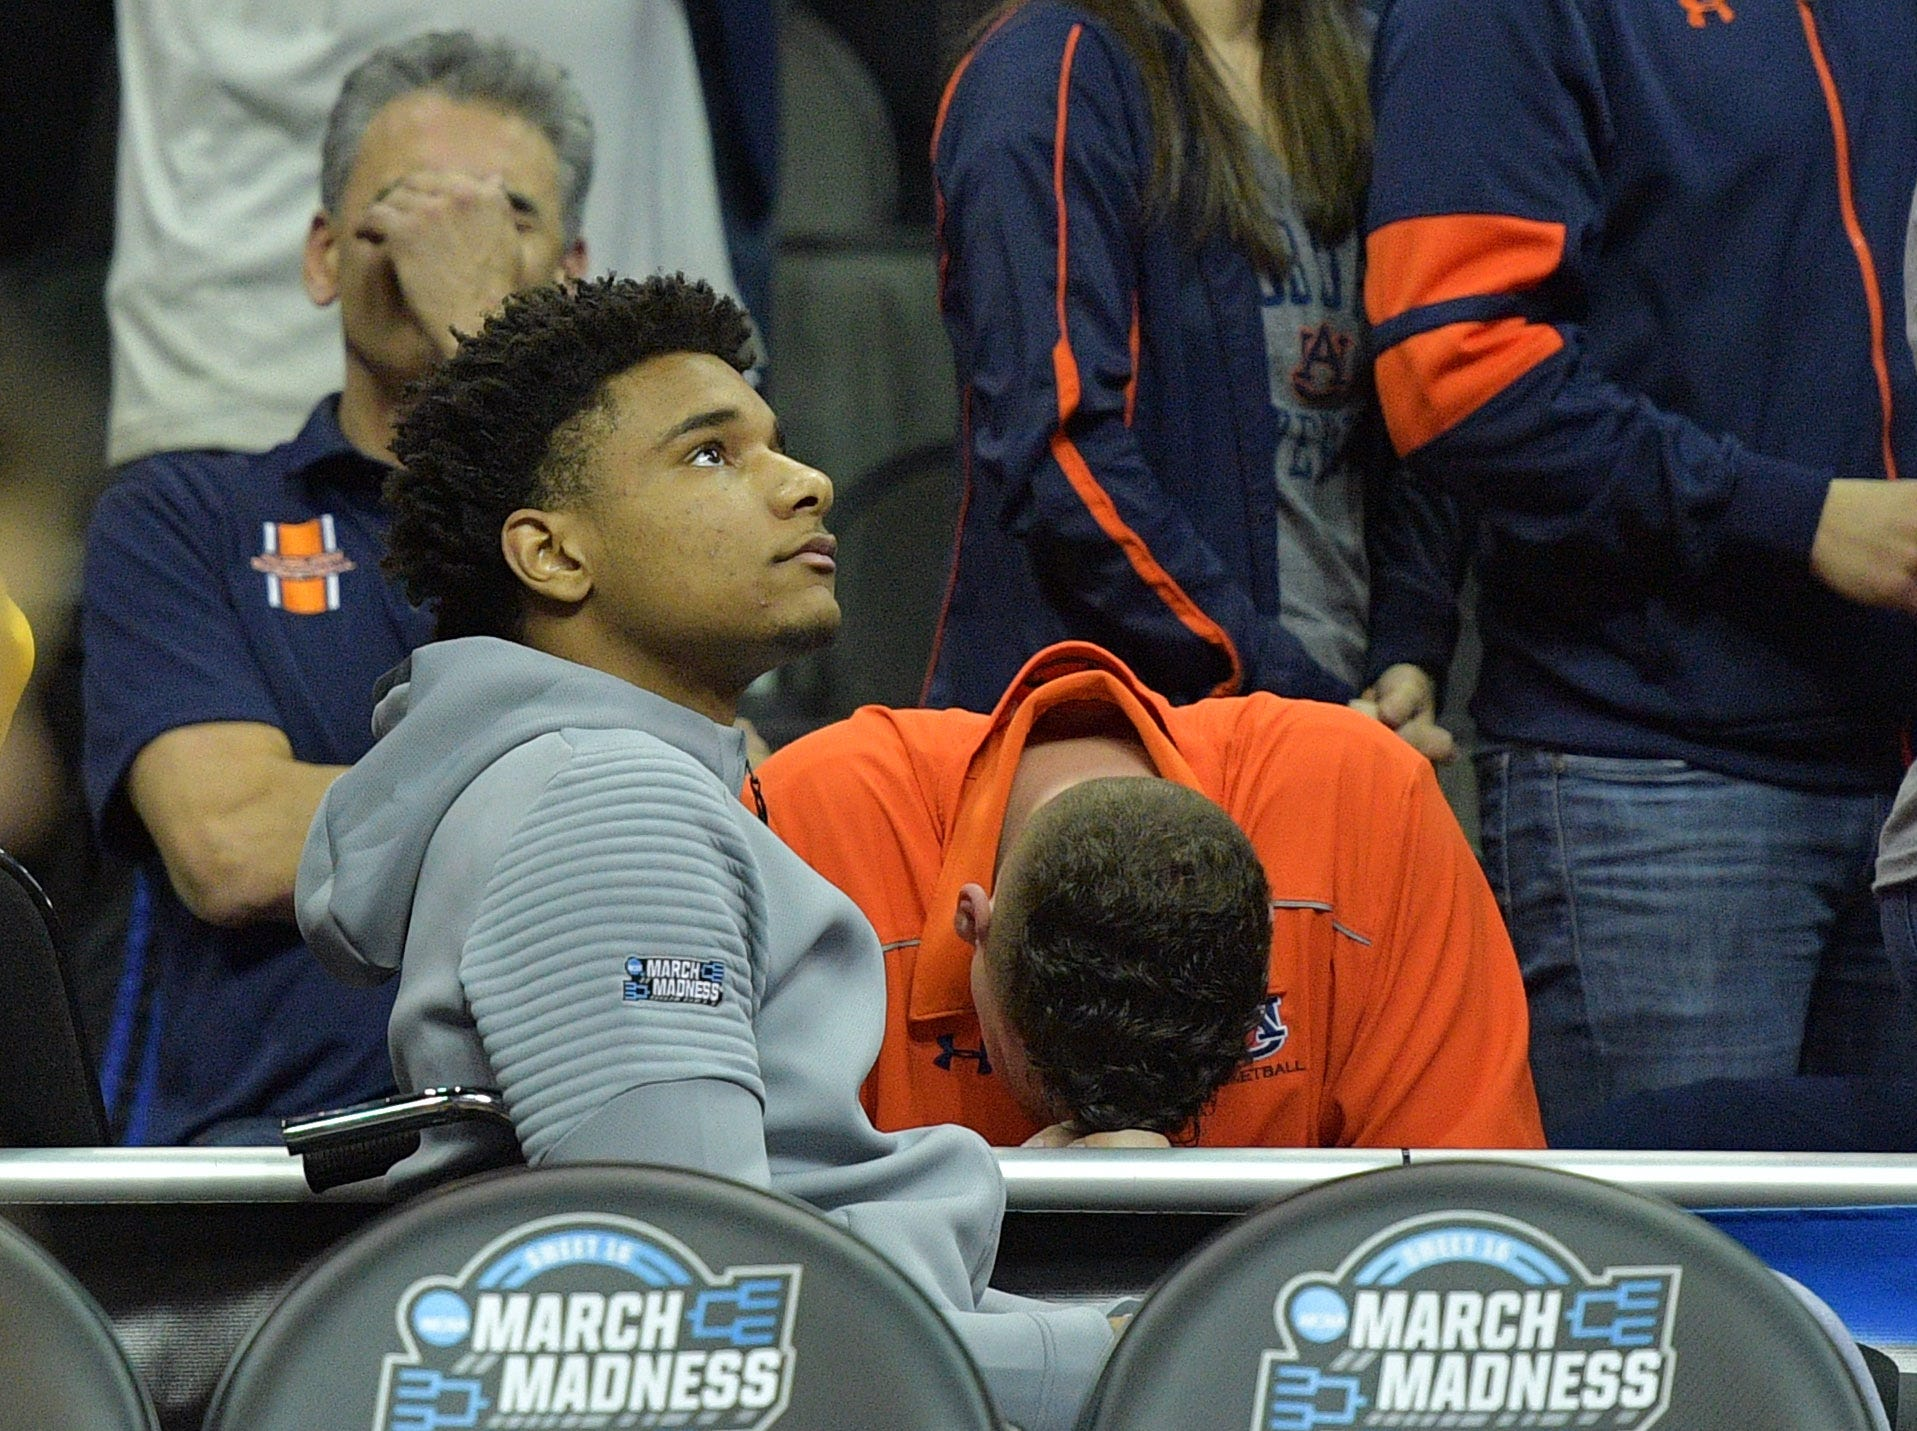 Mar 31, 2019; Kansas City, MO, United States; Auburn Tigers forward Chuma Okeke on the bench during overtime in the championship game of the midwest regional of the 2019 NCAA Tournament against the Kentucky Wildcats at Sprint Center. Mandatory Credit: Denny Medley-USA TODAY Sports